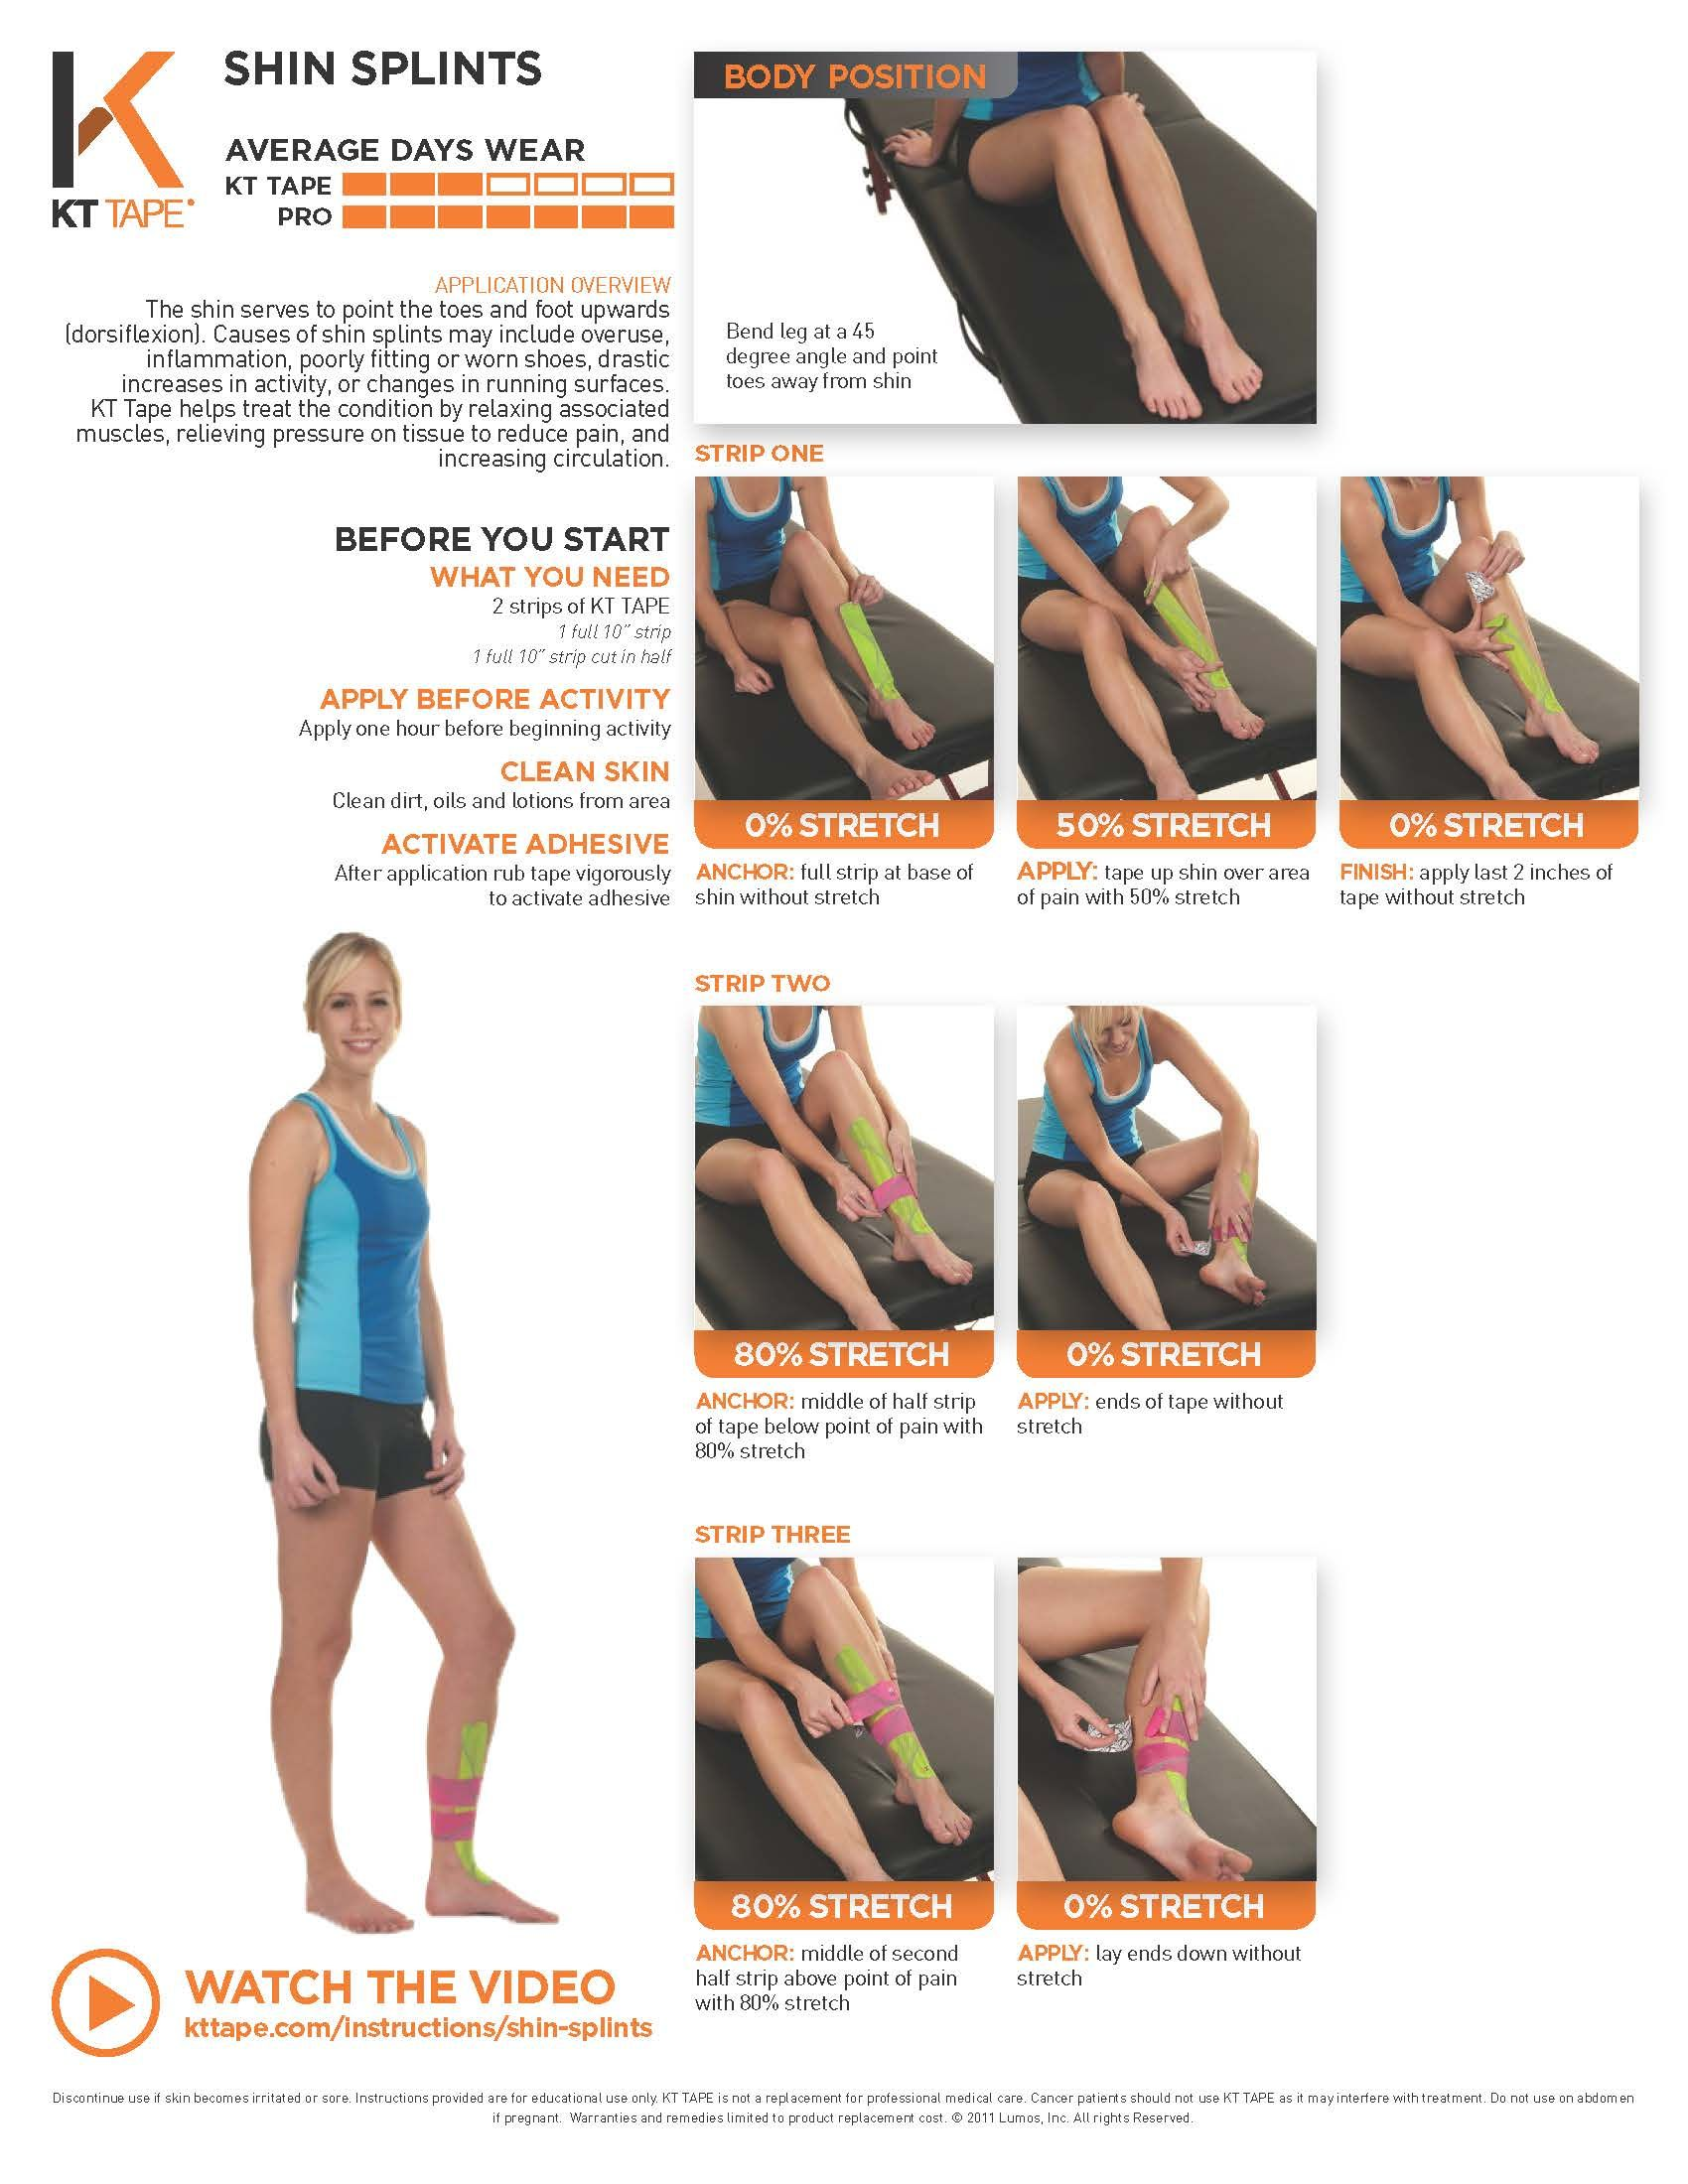 Shin Splints Taping KT Tape helps treat the condition by relaxing